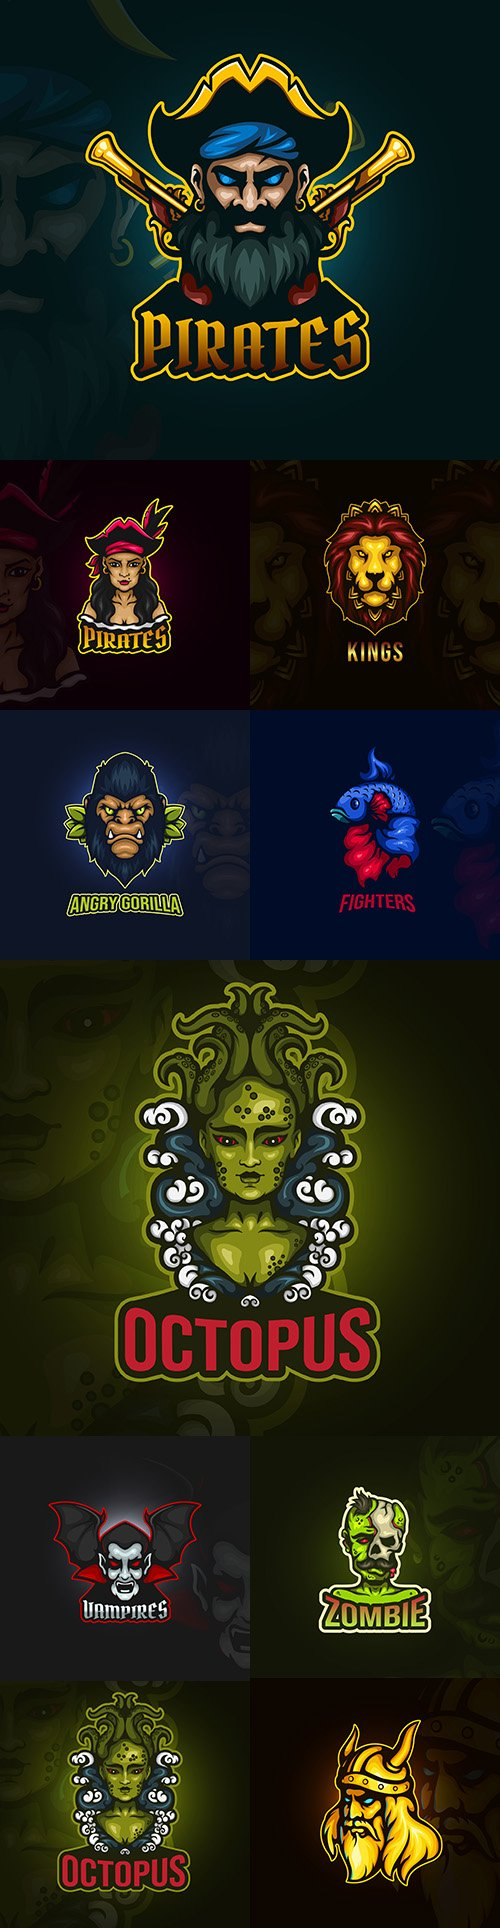 Emblem gaming mascot design cybersport illustration 27